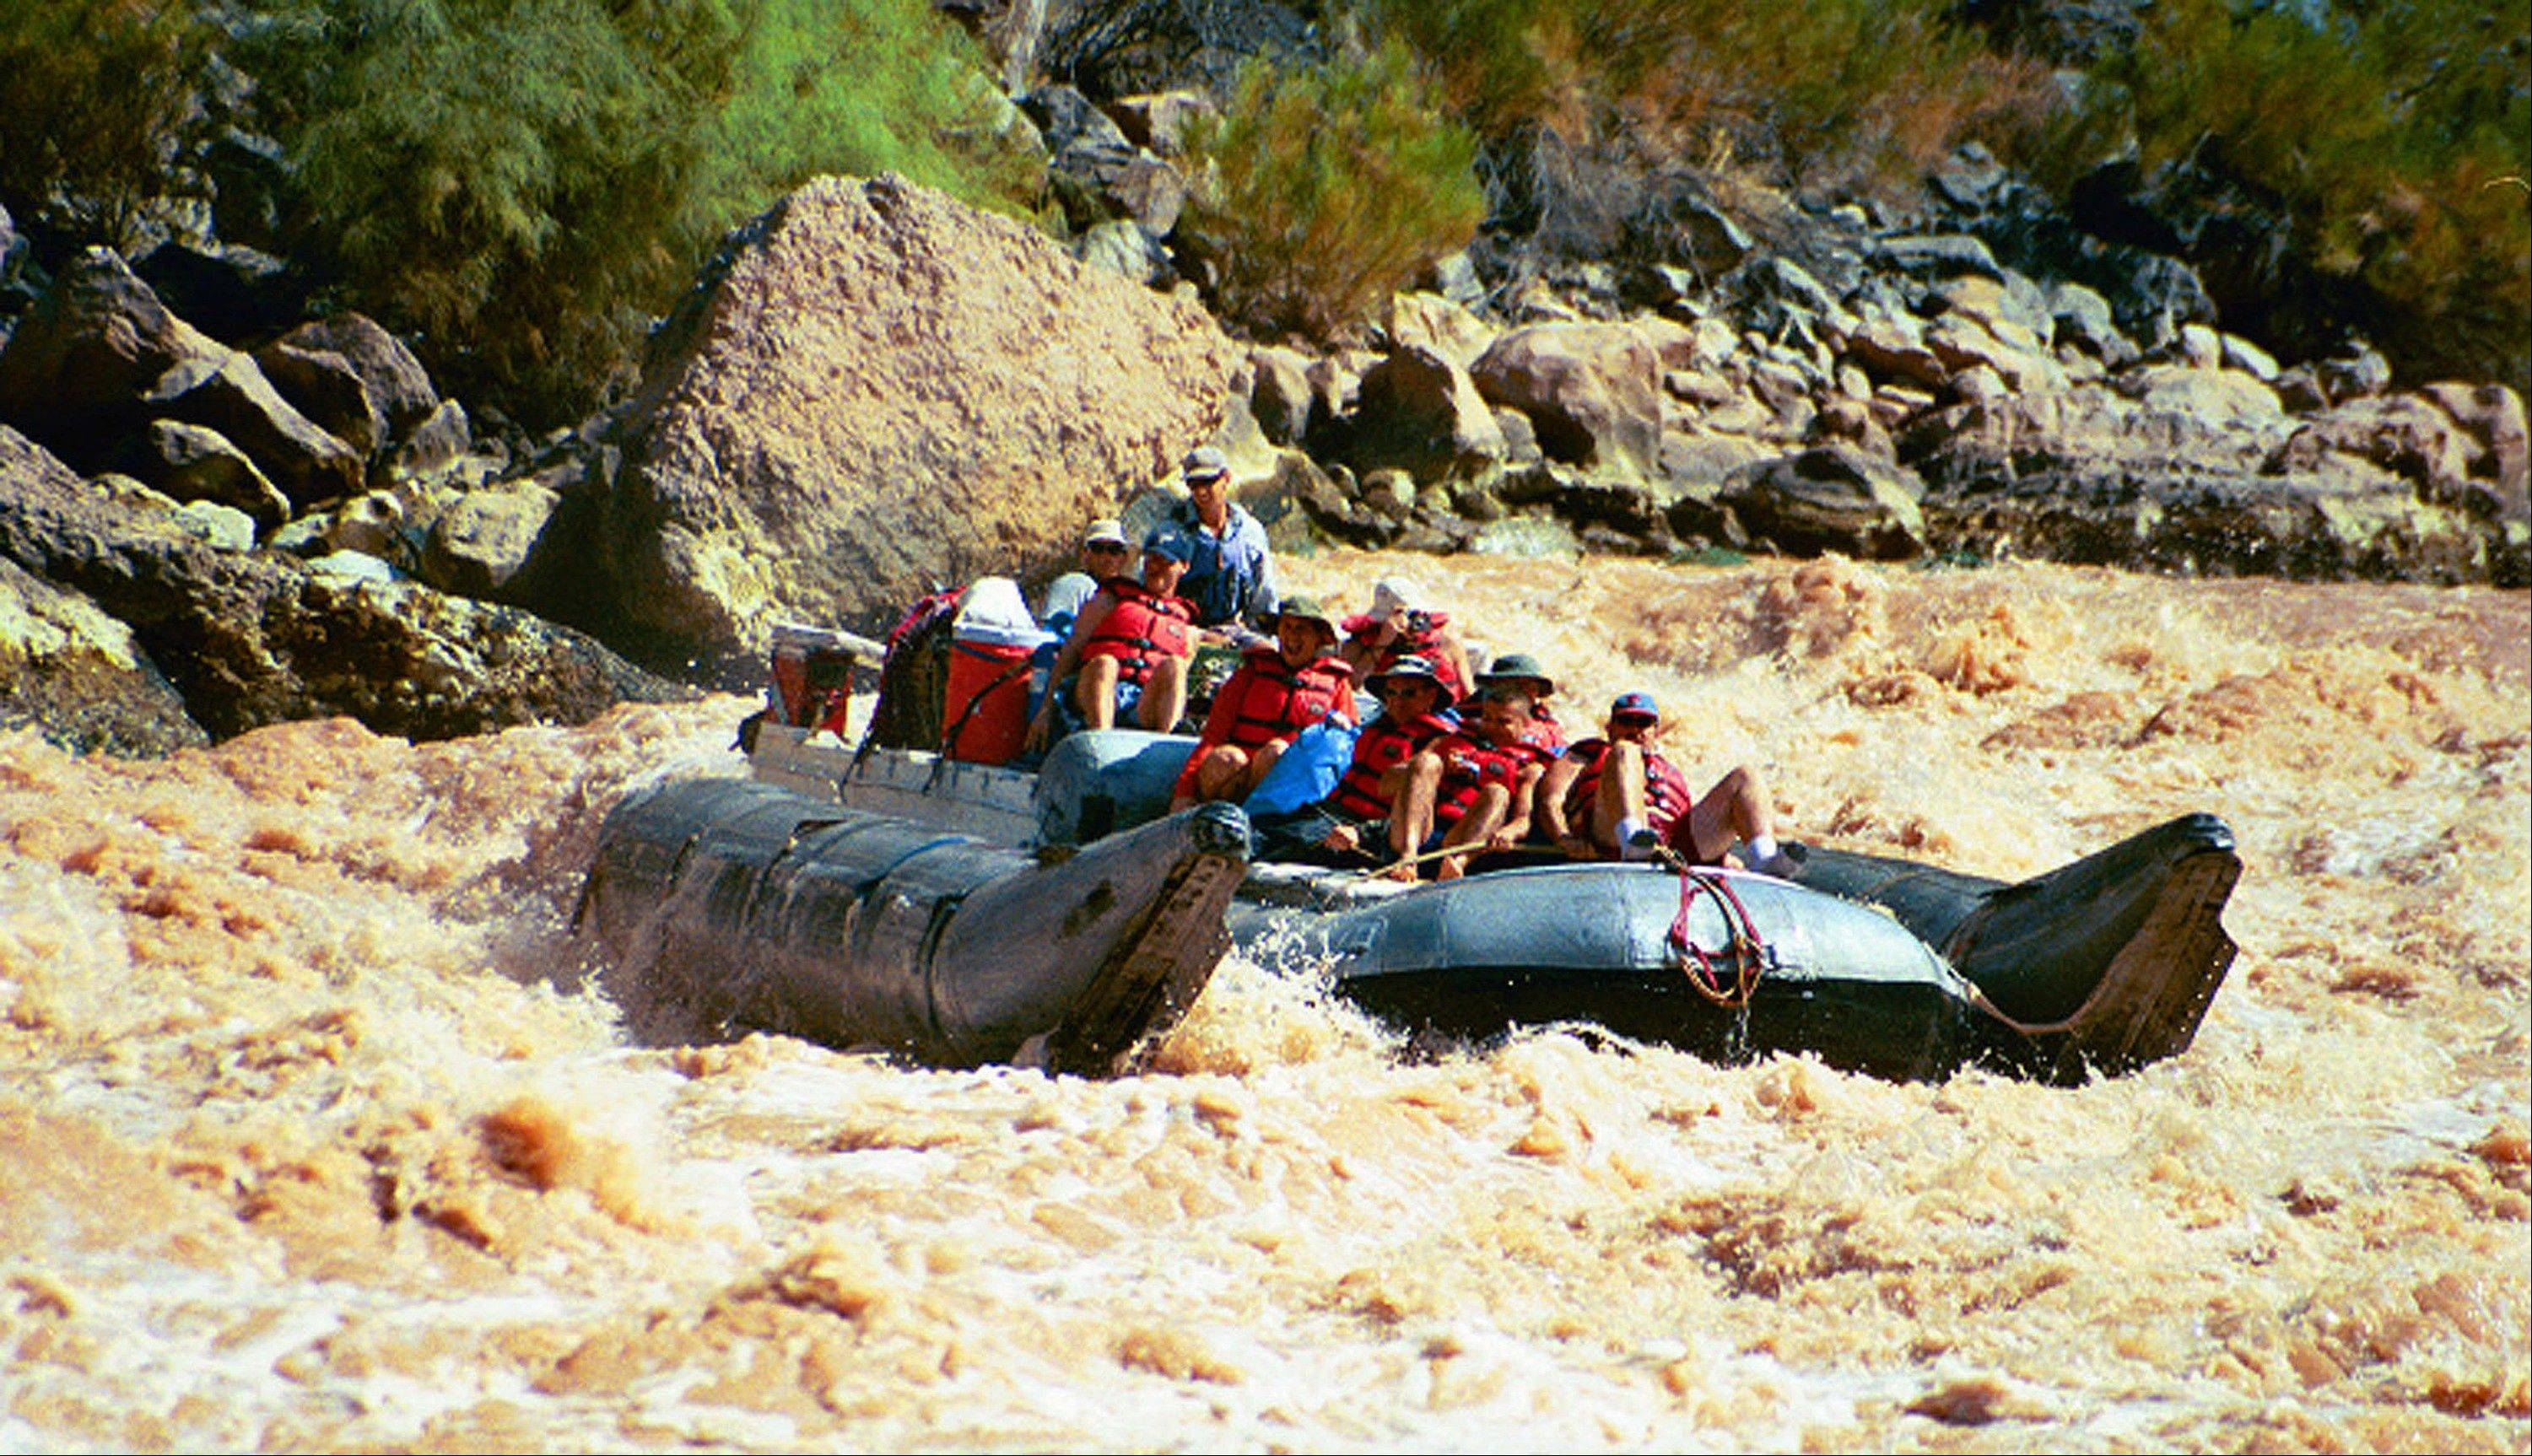 A group of visitors rides a pontoon raft through rapids in Grand Canyon National Park in Arizona. Thousands of people who had been on a waiting list for a coveted trip on the Colorado River through the Grand Canyon still are waiting.